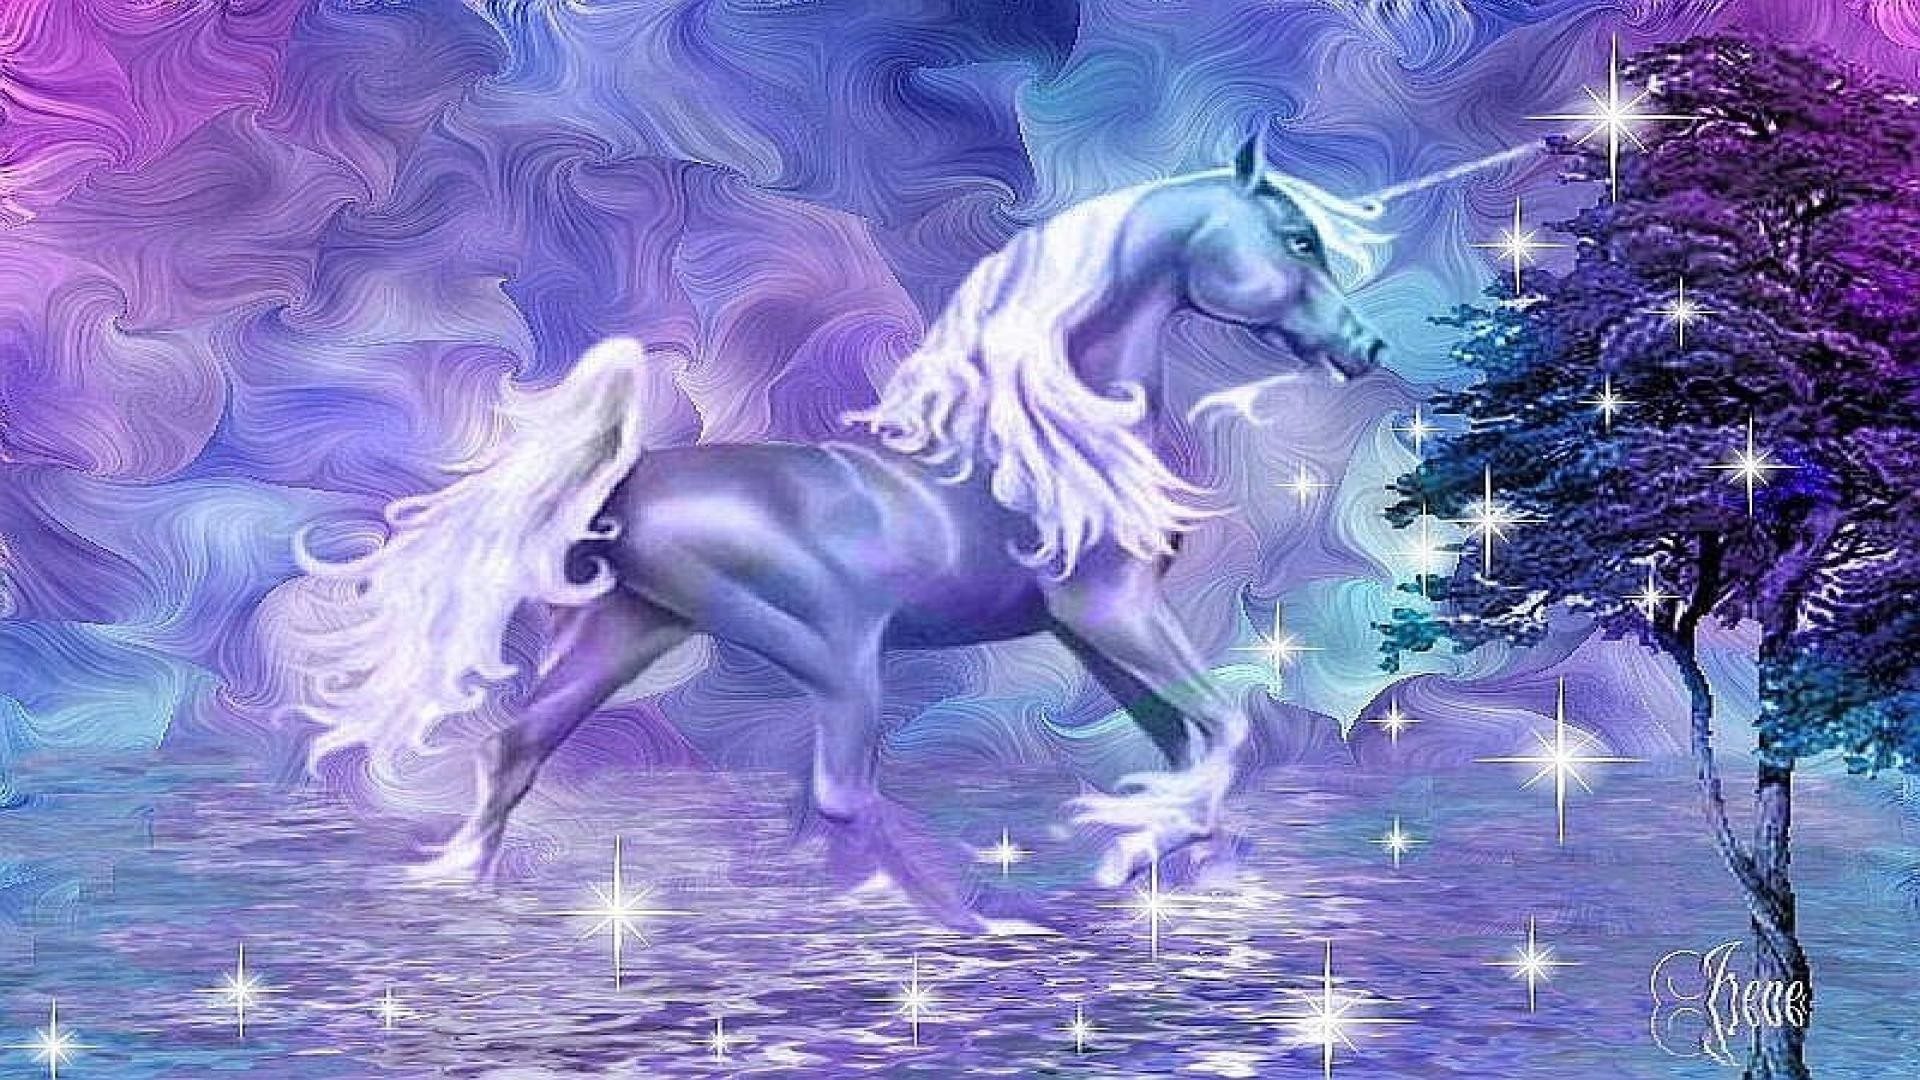 Hd wallpaper unicorn - Purple Unicorn Wallpaper